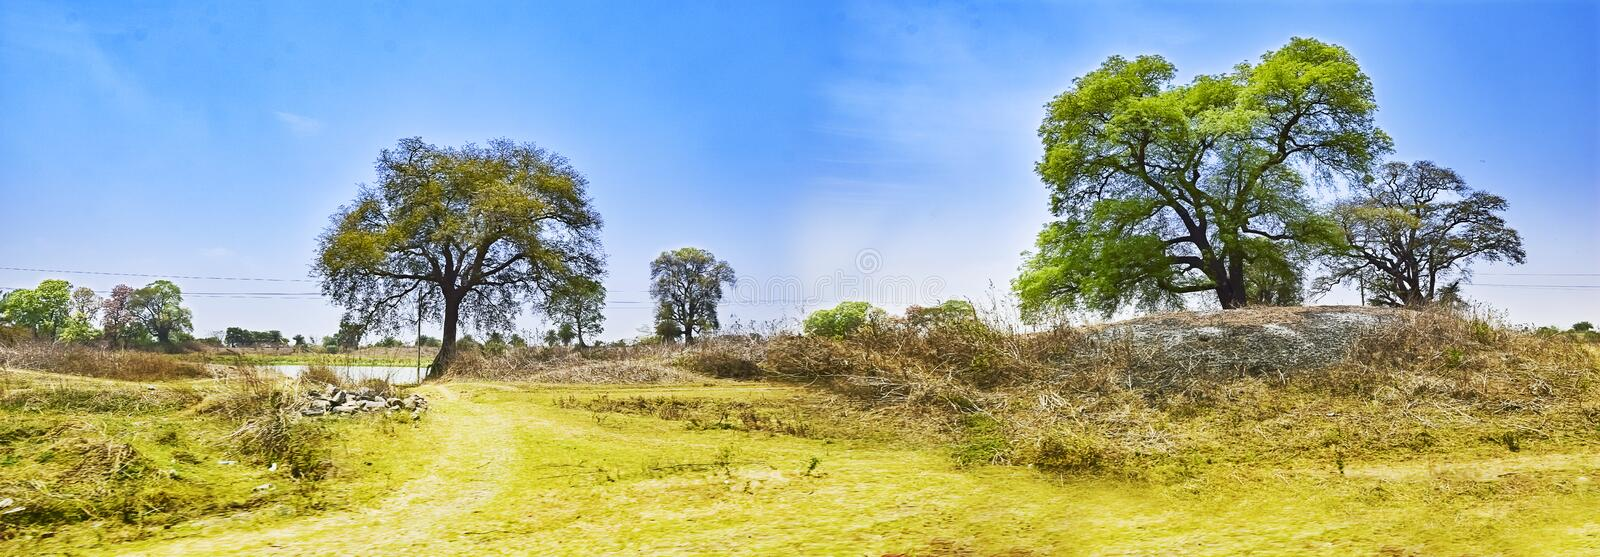 Landscape of a River Bank.Damodar.INDIA.Asansol.treeson the ban. Landscape of a River Bank.Damodar.INDIA.Asansol royalty free stock photography